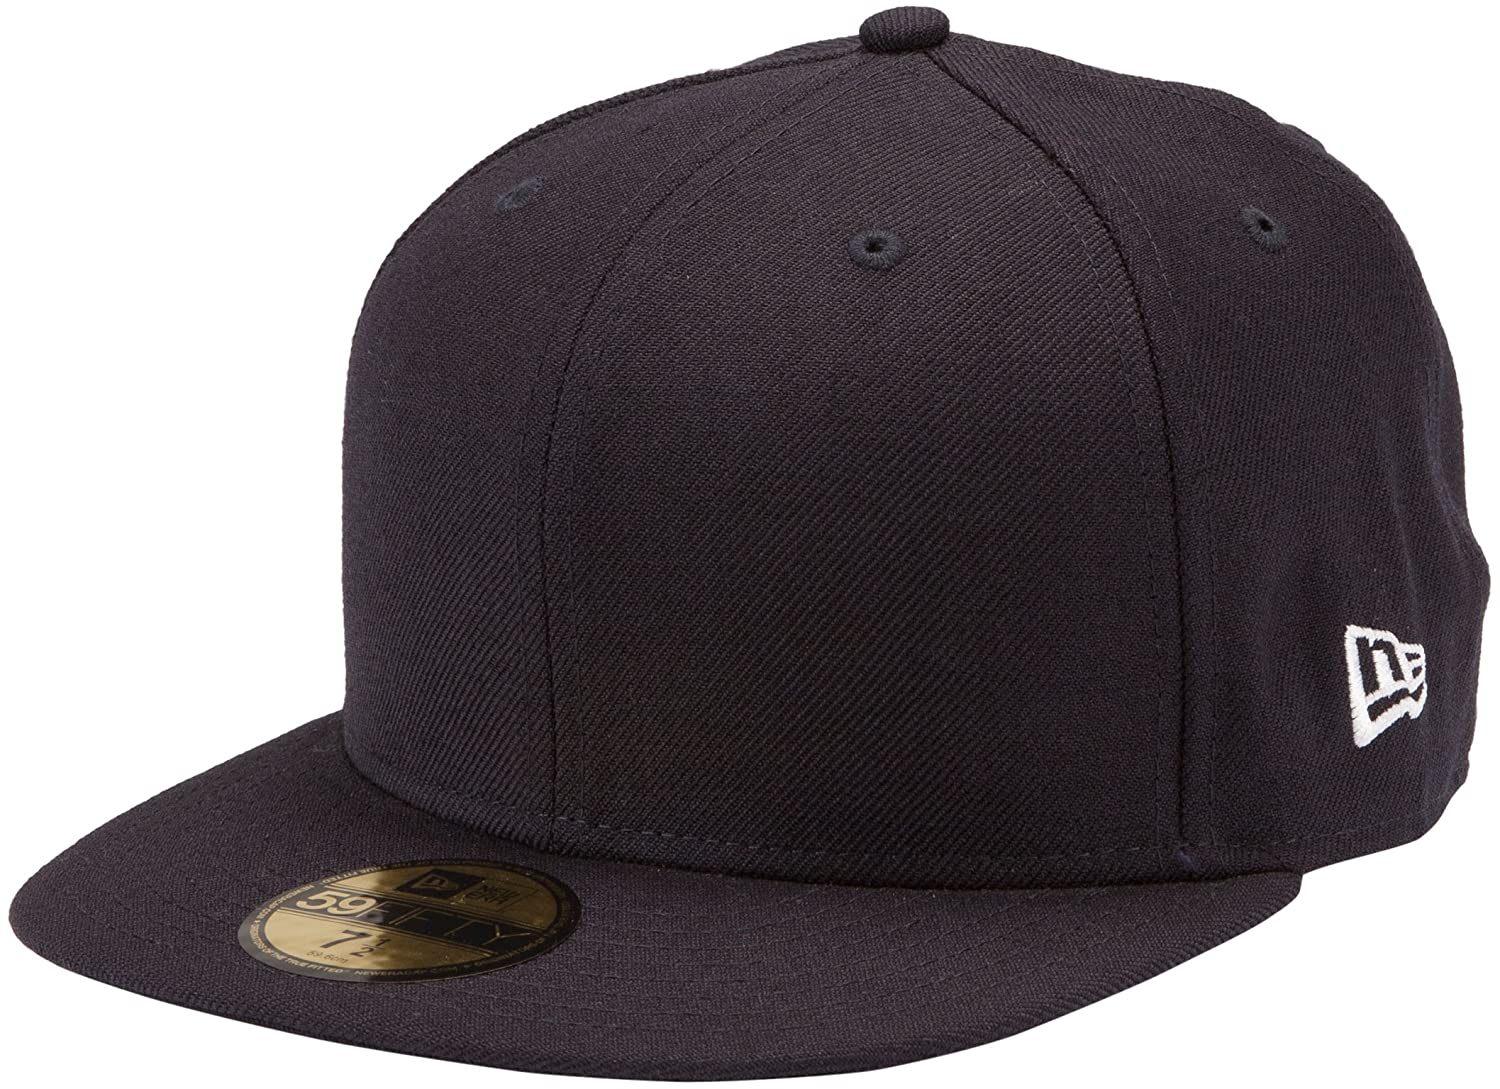 Amazon.com   New Era Blanks 59FIFTY Fitted Original Plain Blank Cap    Sports Fan Baseball Caps   Clothing 0db08512bfc